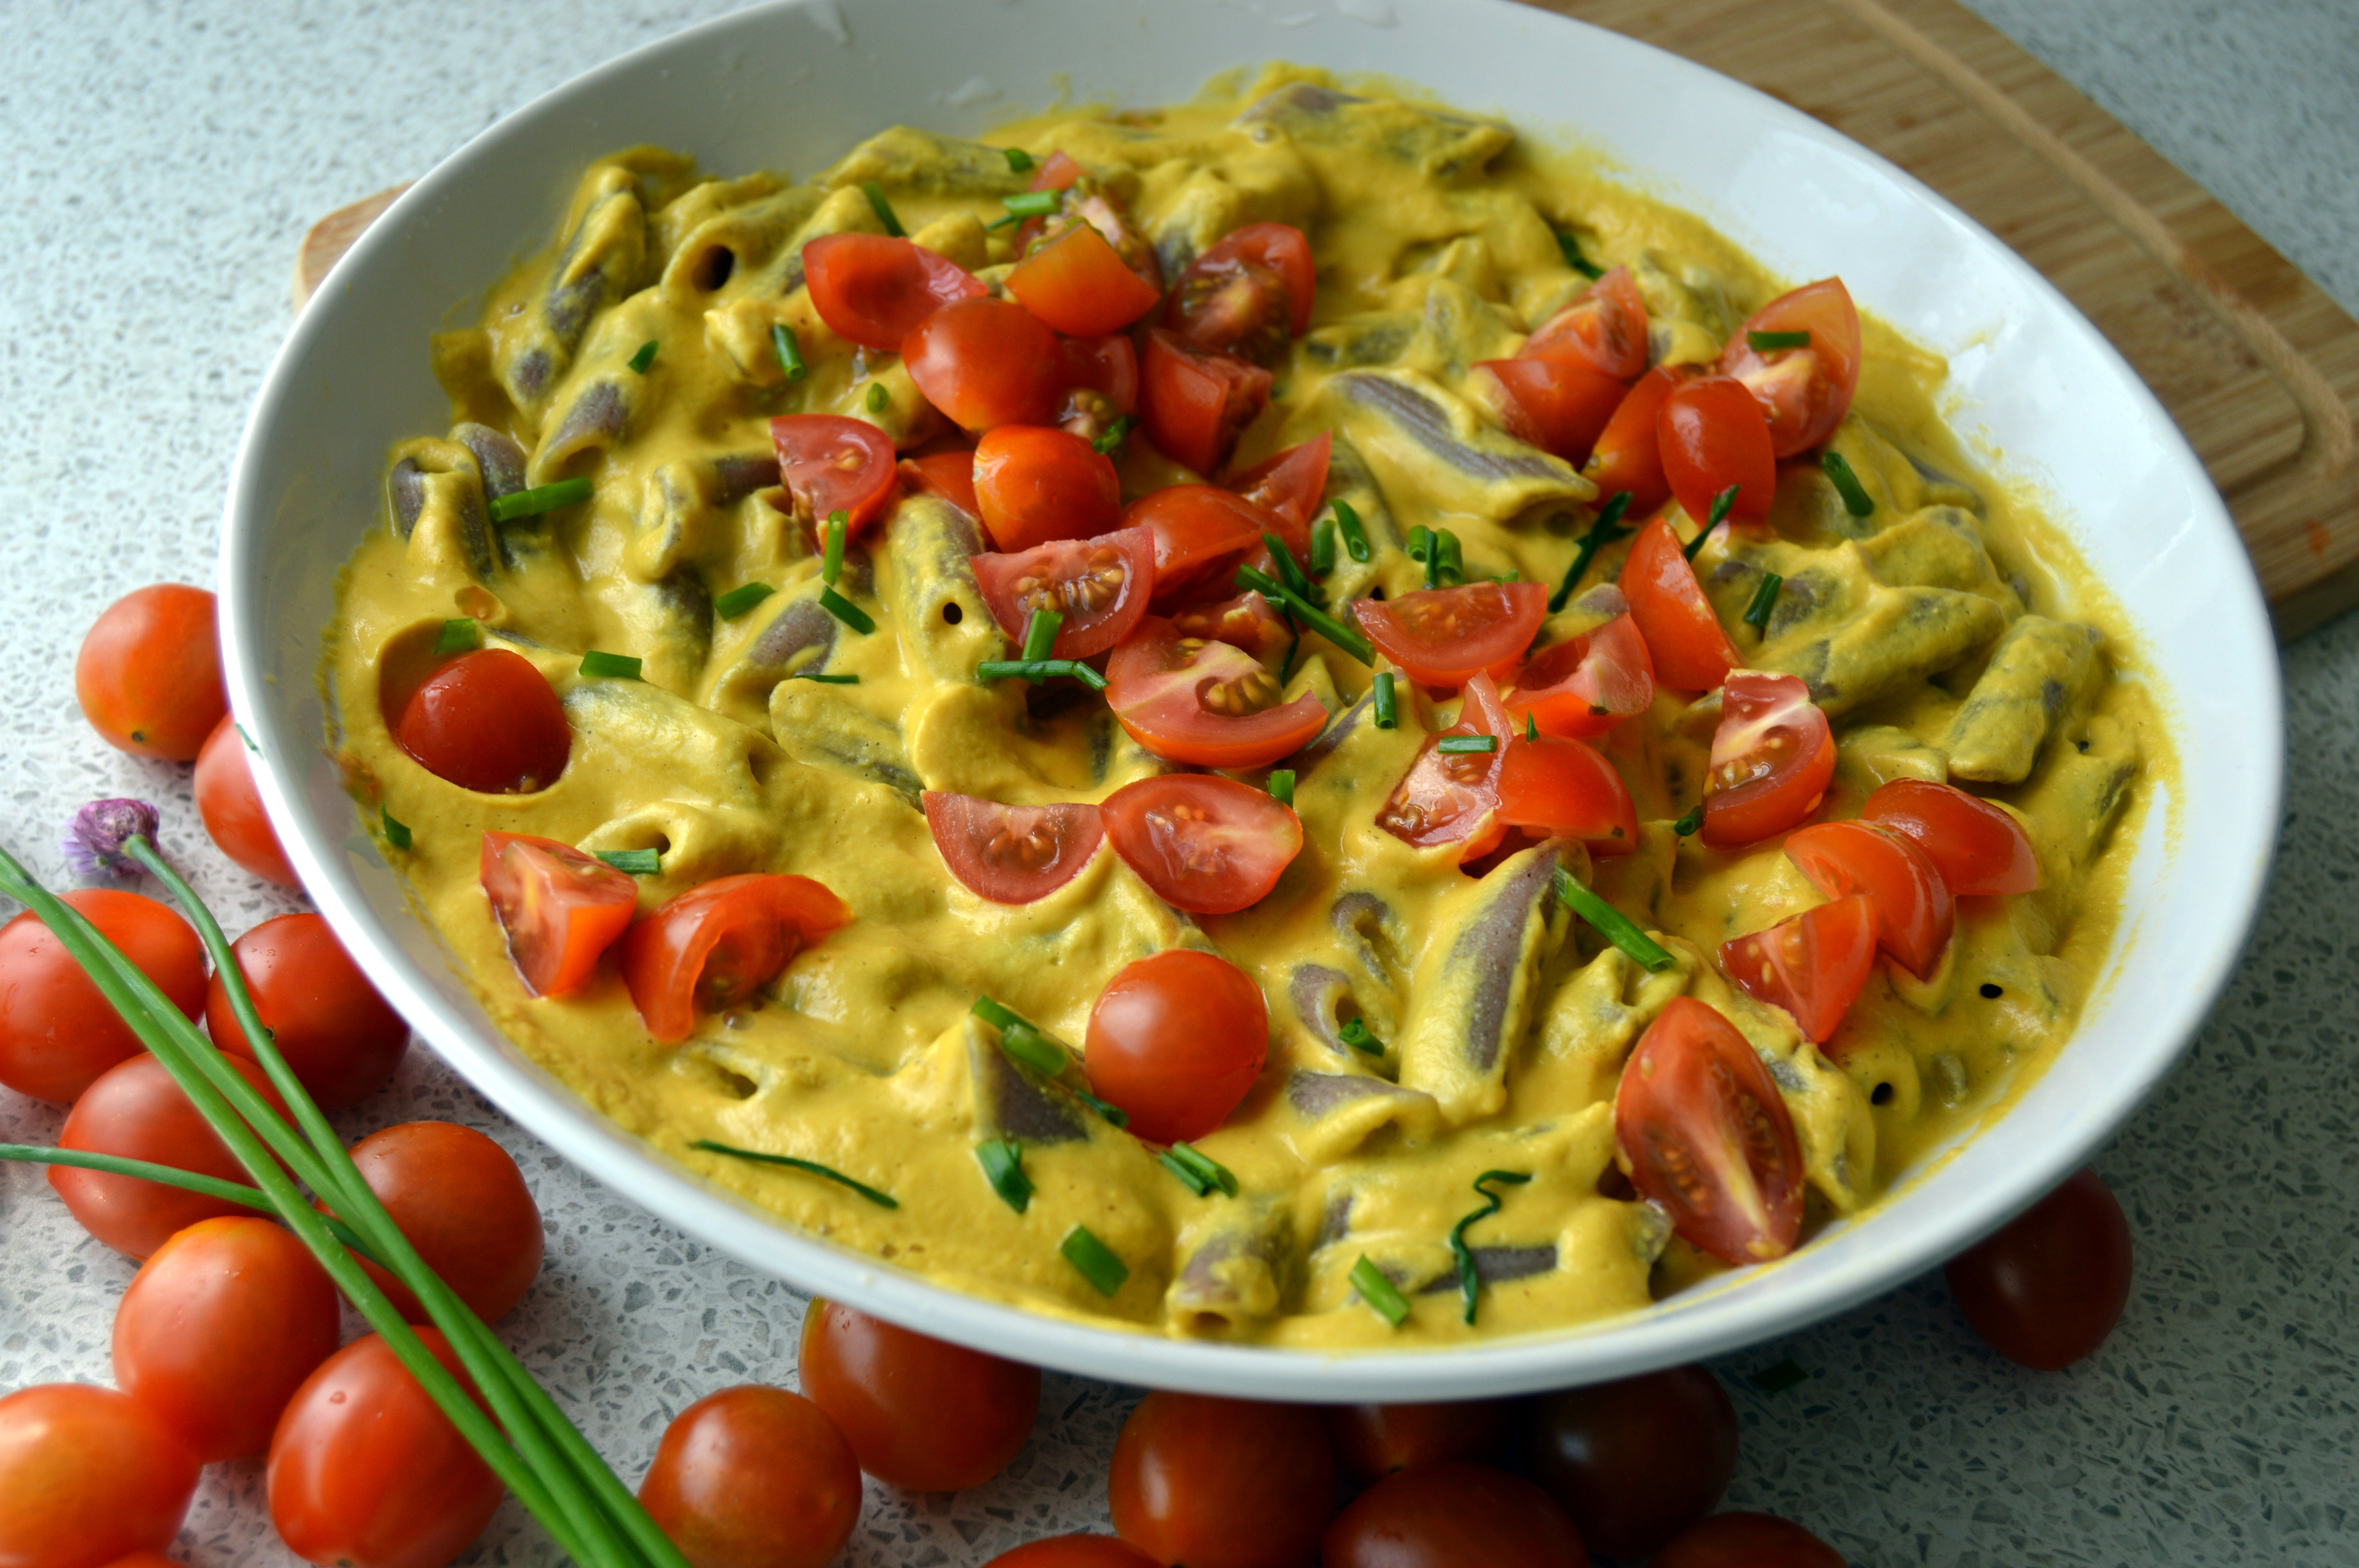 Cheese Sauce For Pasta – Vegan using mainly sunflower seeds